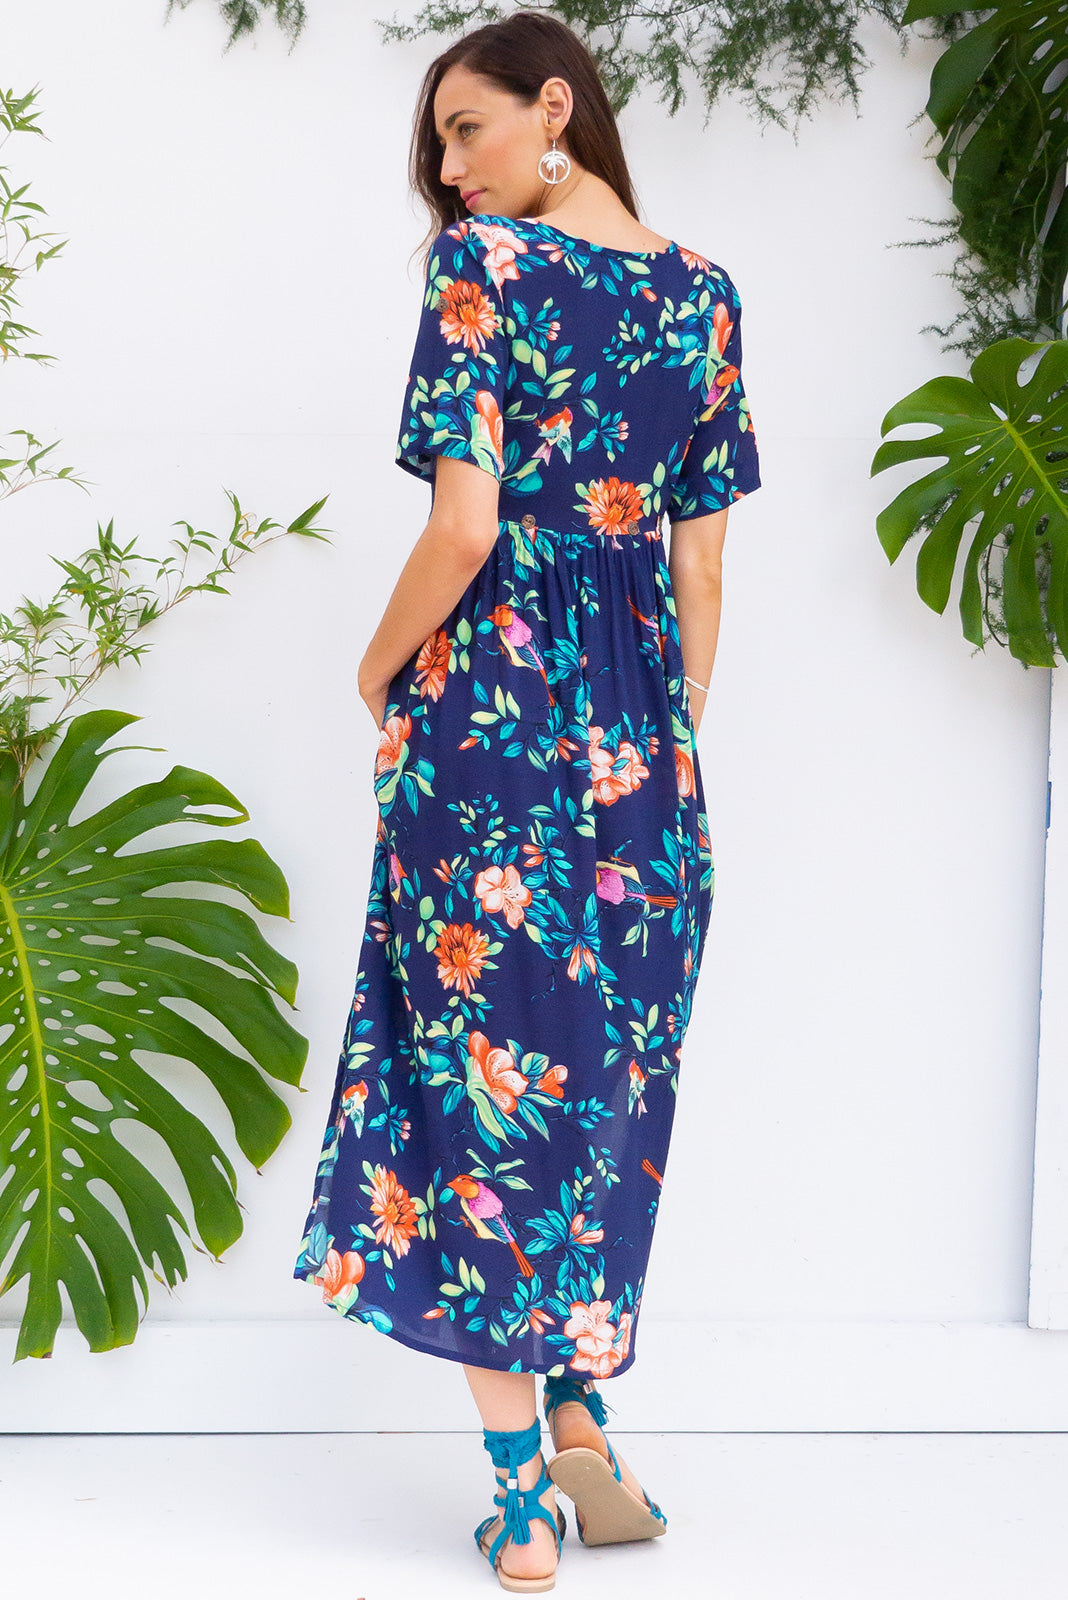 Rocco Navy Birds button front maxi dress in bright navy bird and tropical floral print on woven 100% rayon